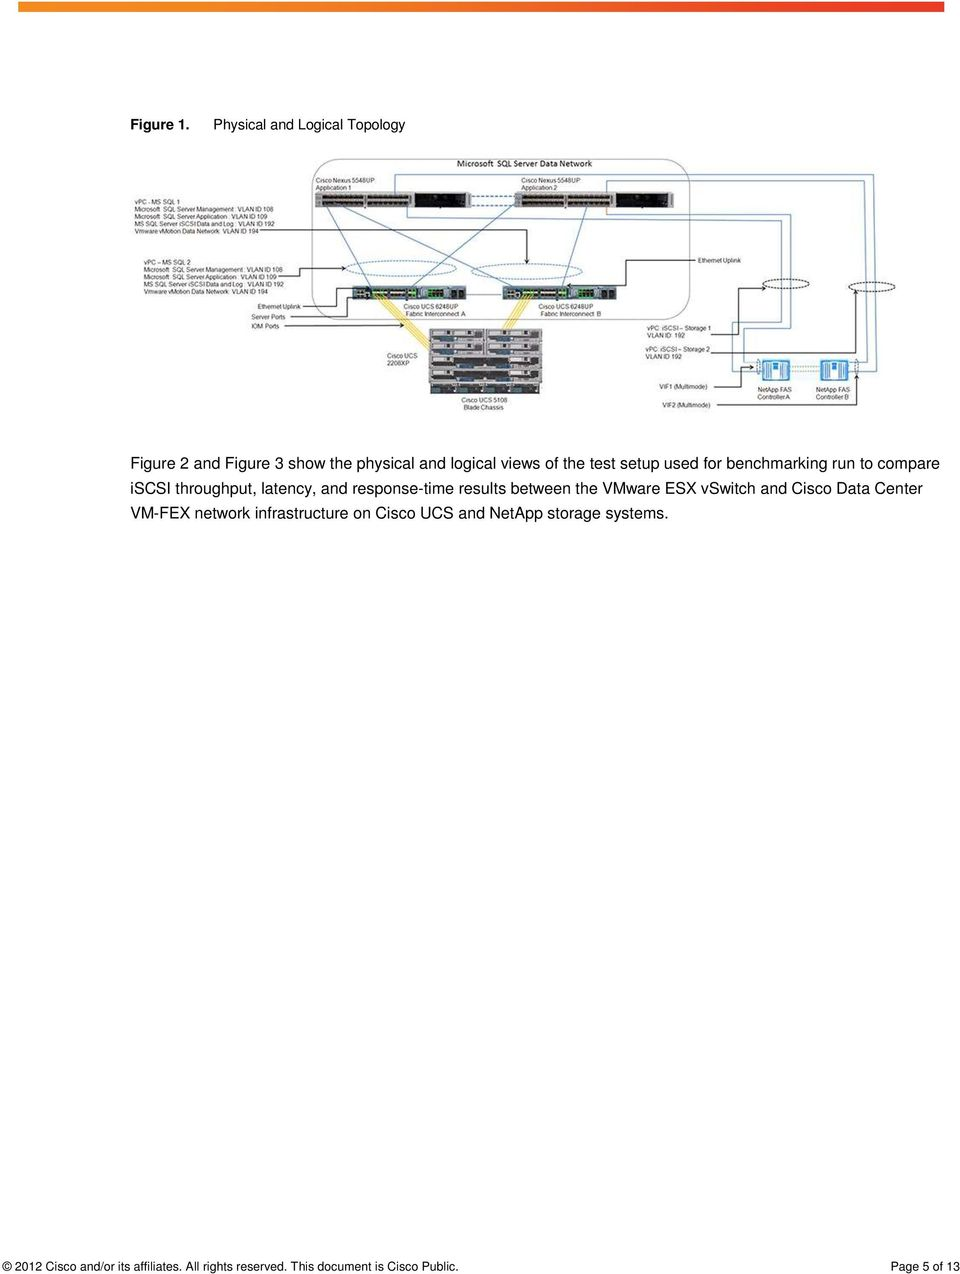 used for benchmarking run to compare iscsi throughput, latency, and response-time results between the